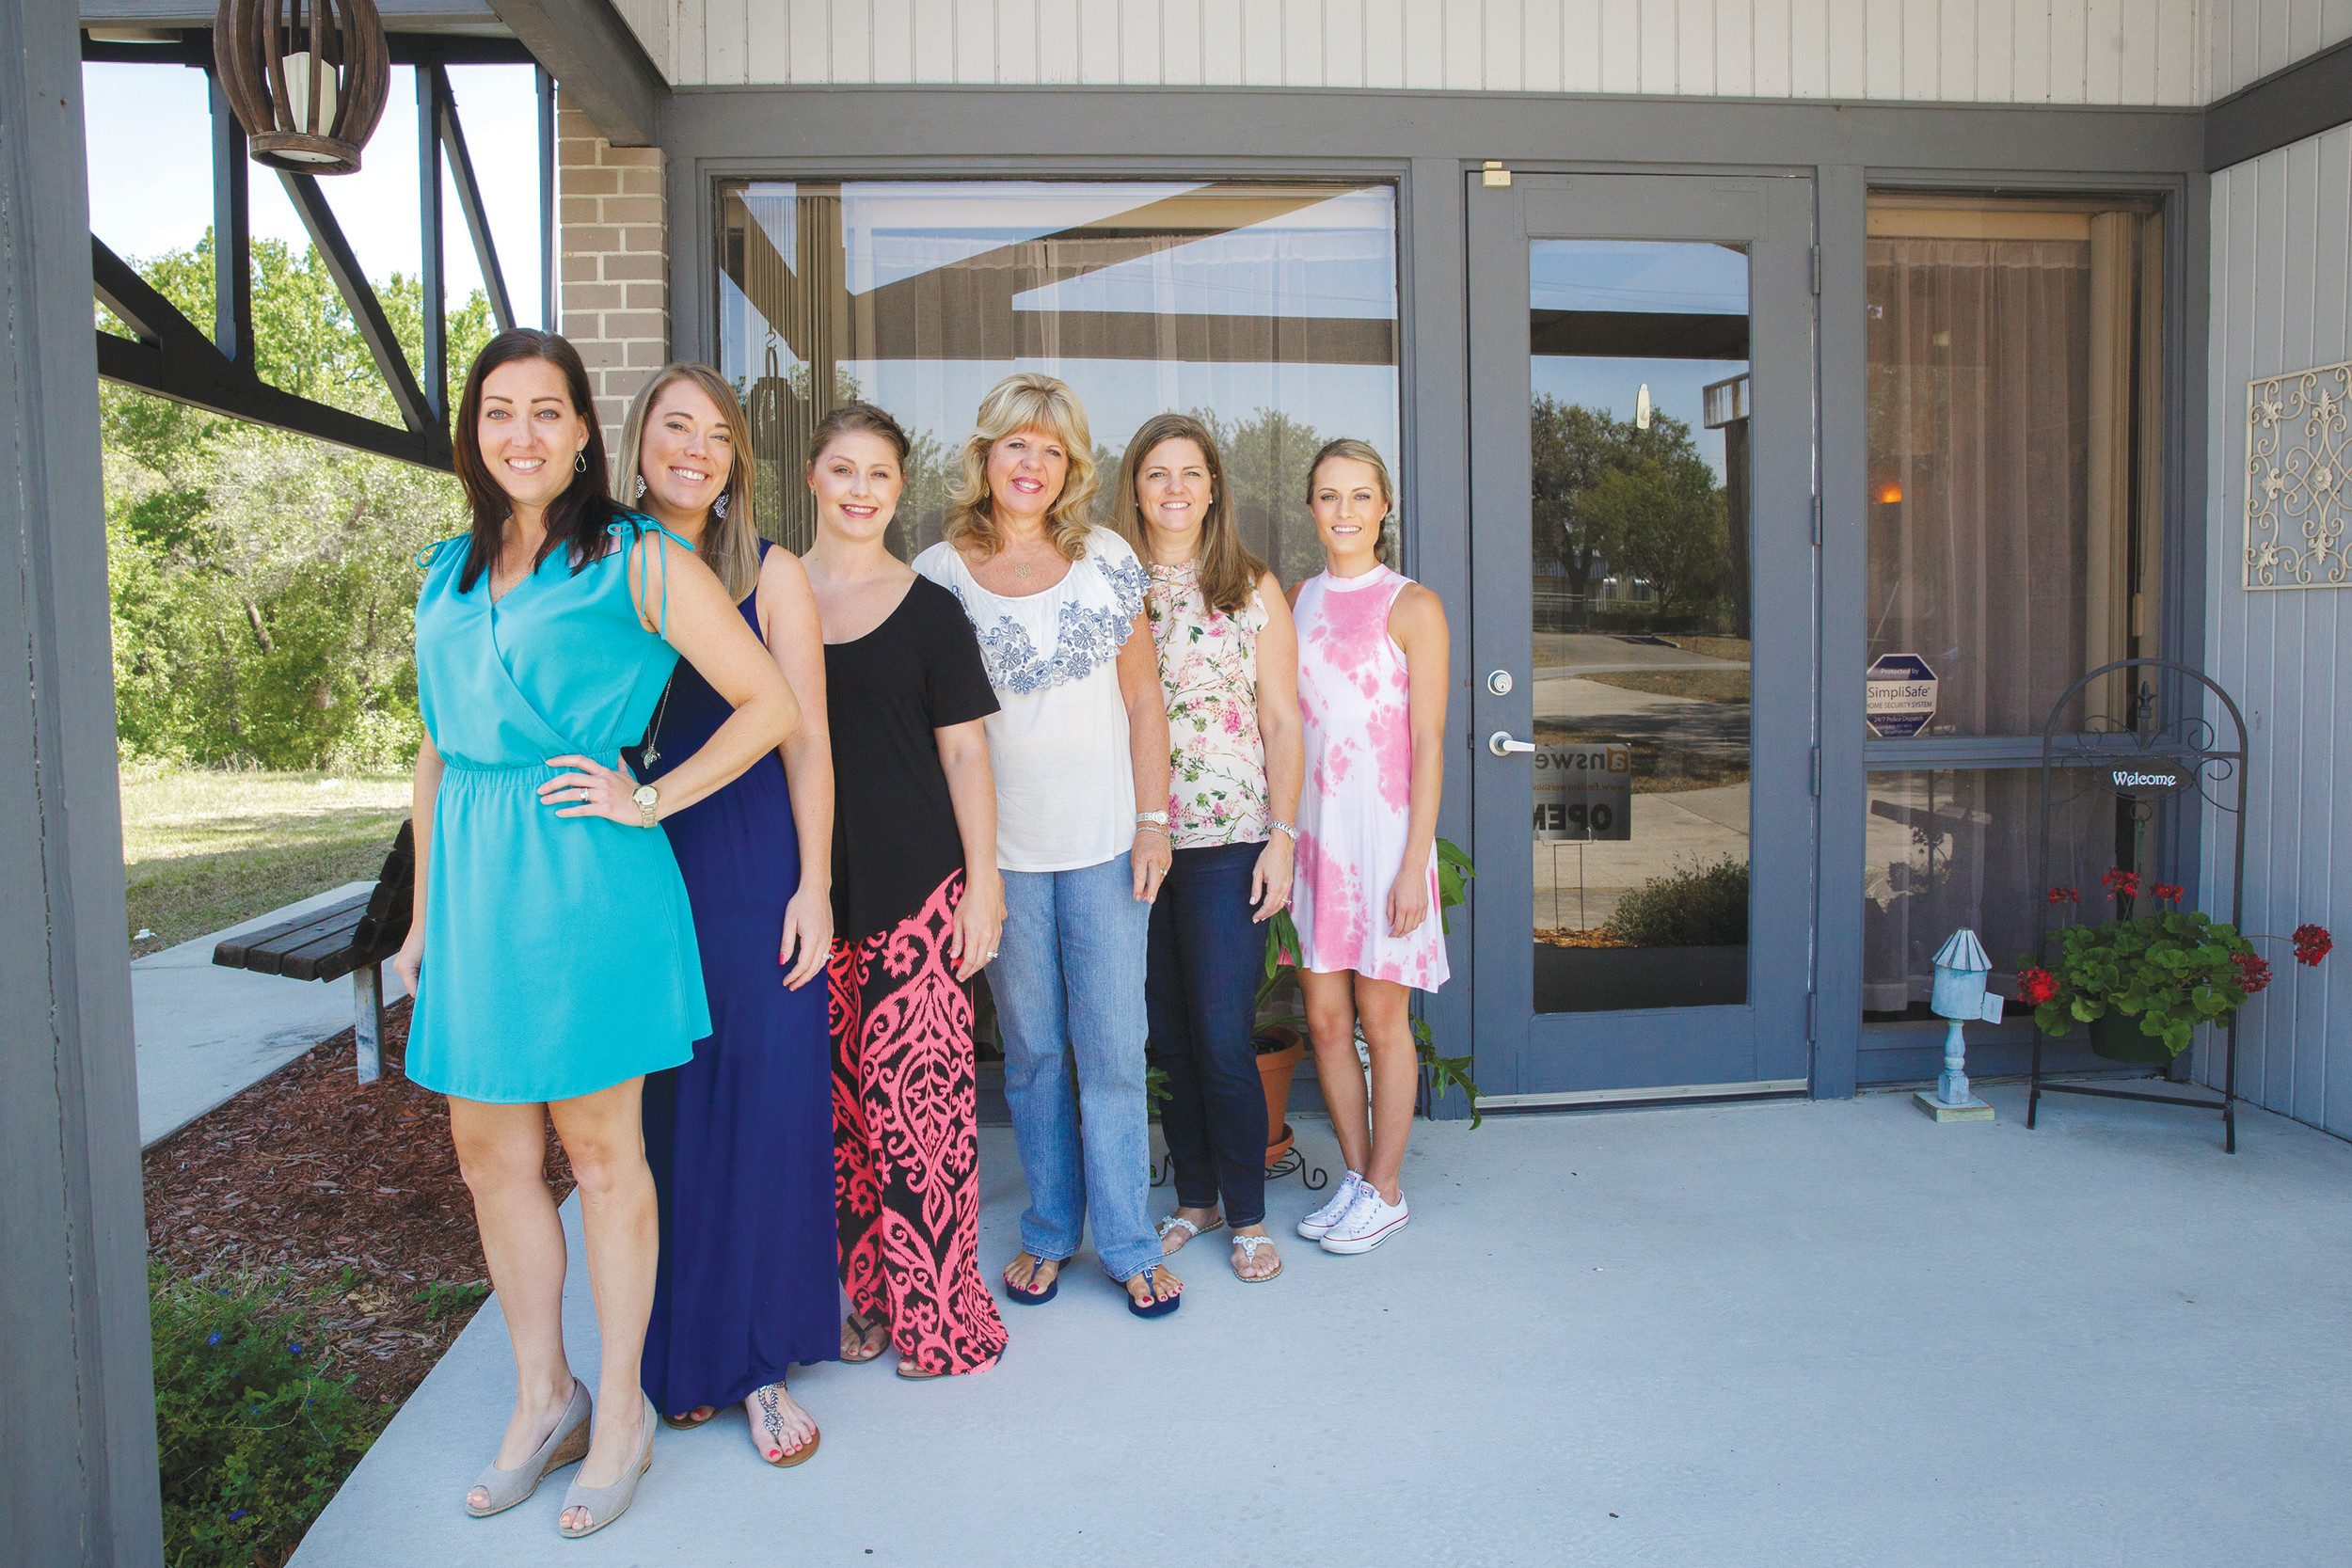 Answers CEO JoAnna Weldon, left, poses with her staff outside their Keystone Heights office. Answers offers counseling and pregnancy testing for women and will soon open a second location in Starke.